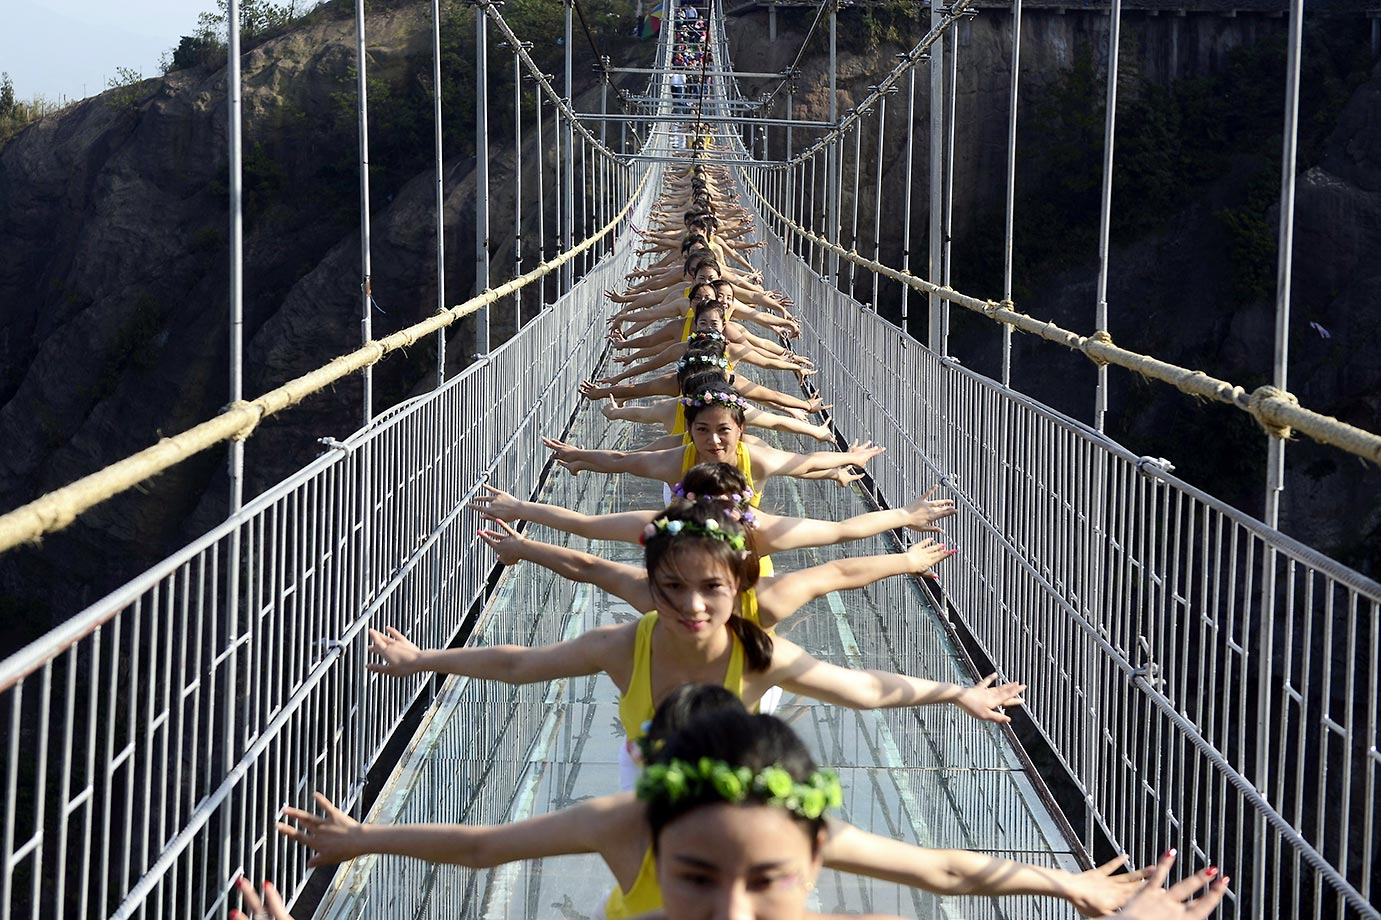 Chinese yoga fans perform on a glass-bottomed suspension bridge in the Shiniuzhai mountains in Pingjiang county, central China's Hunan province.